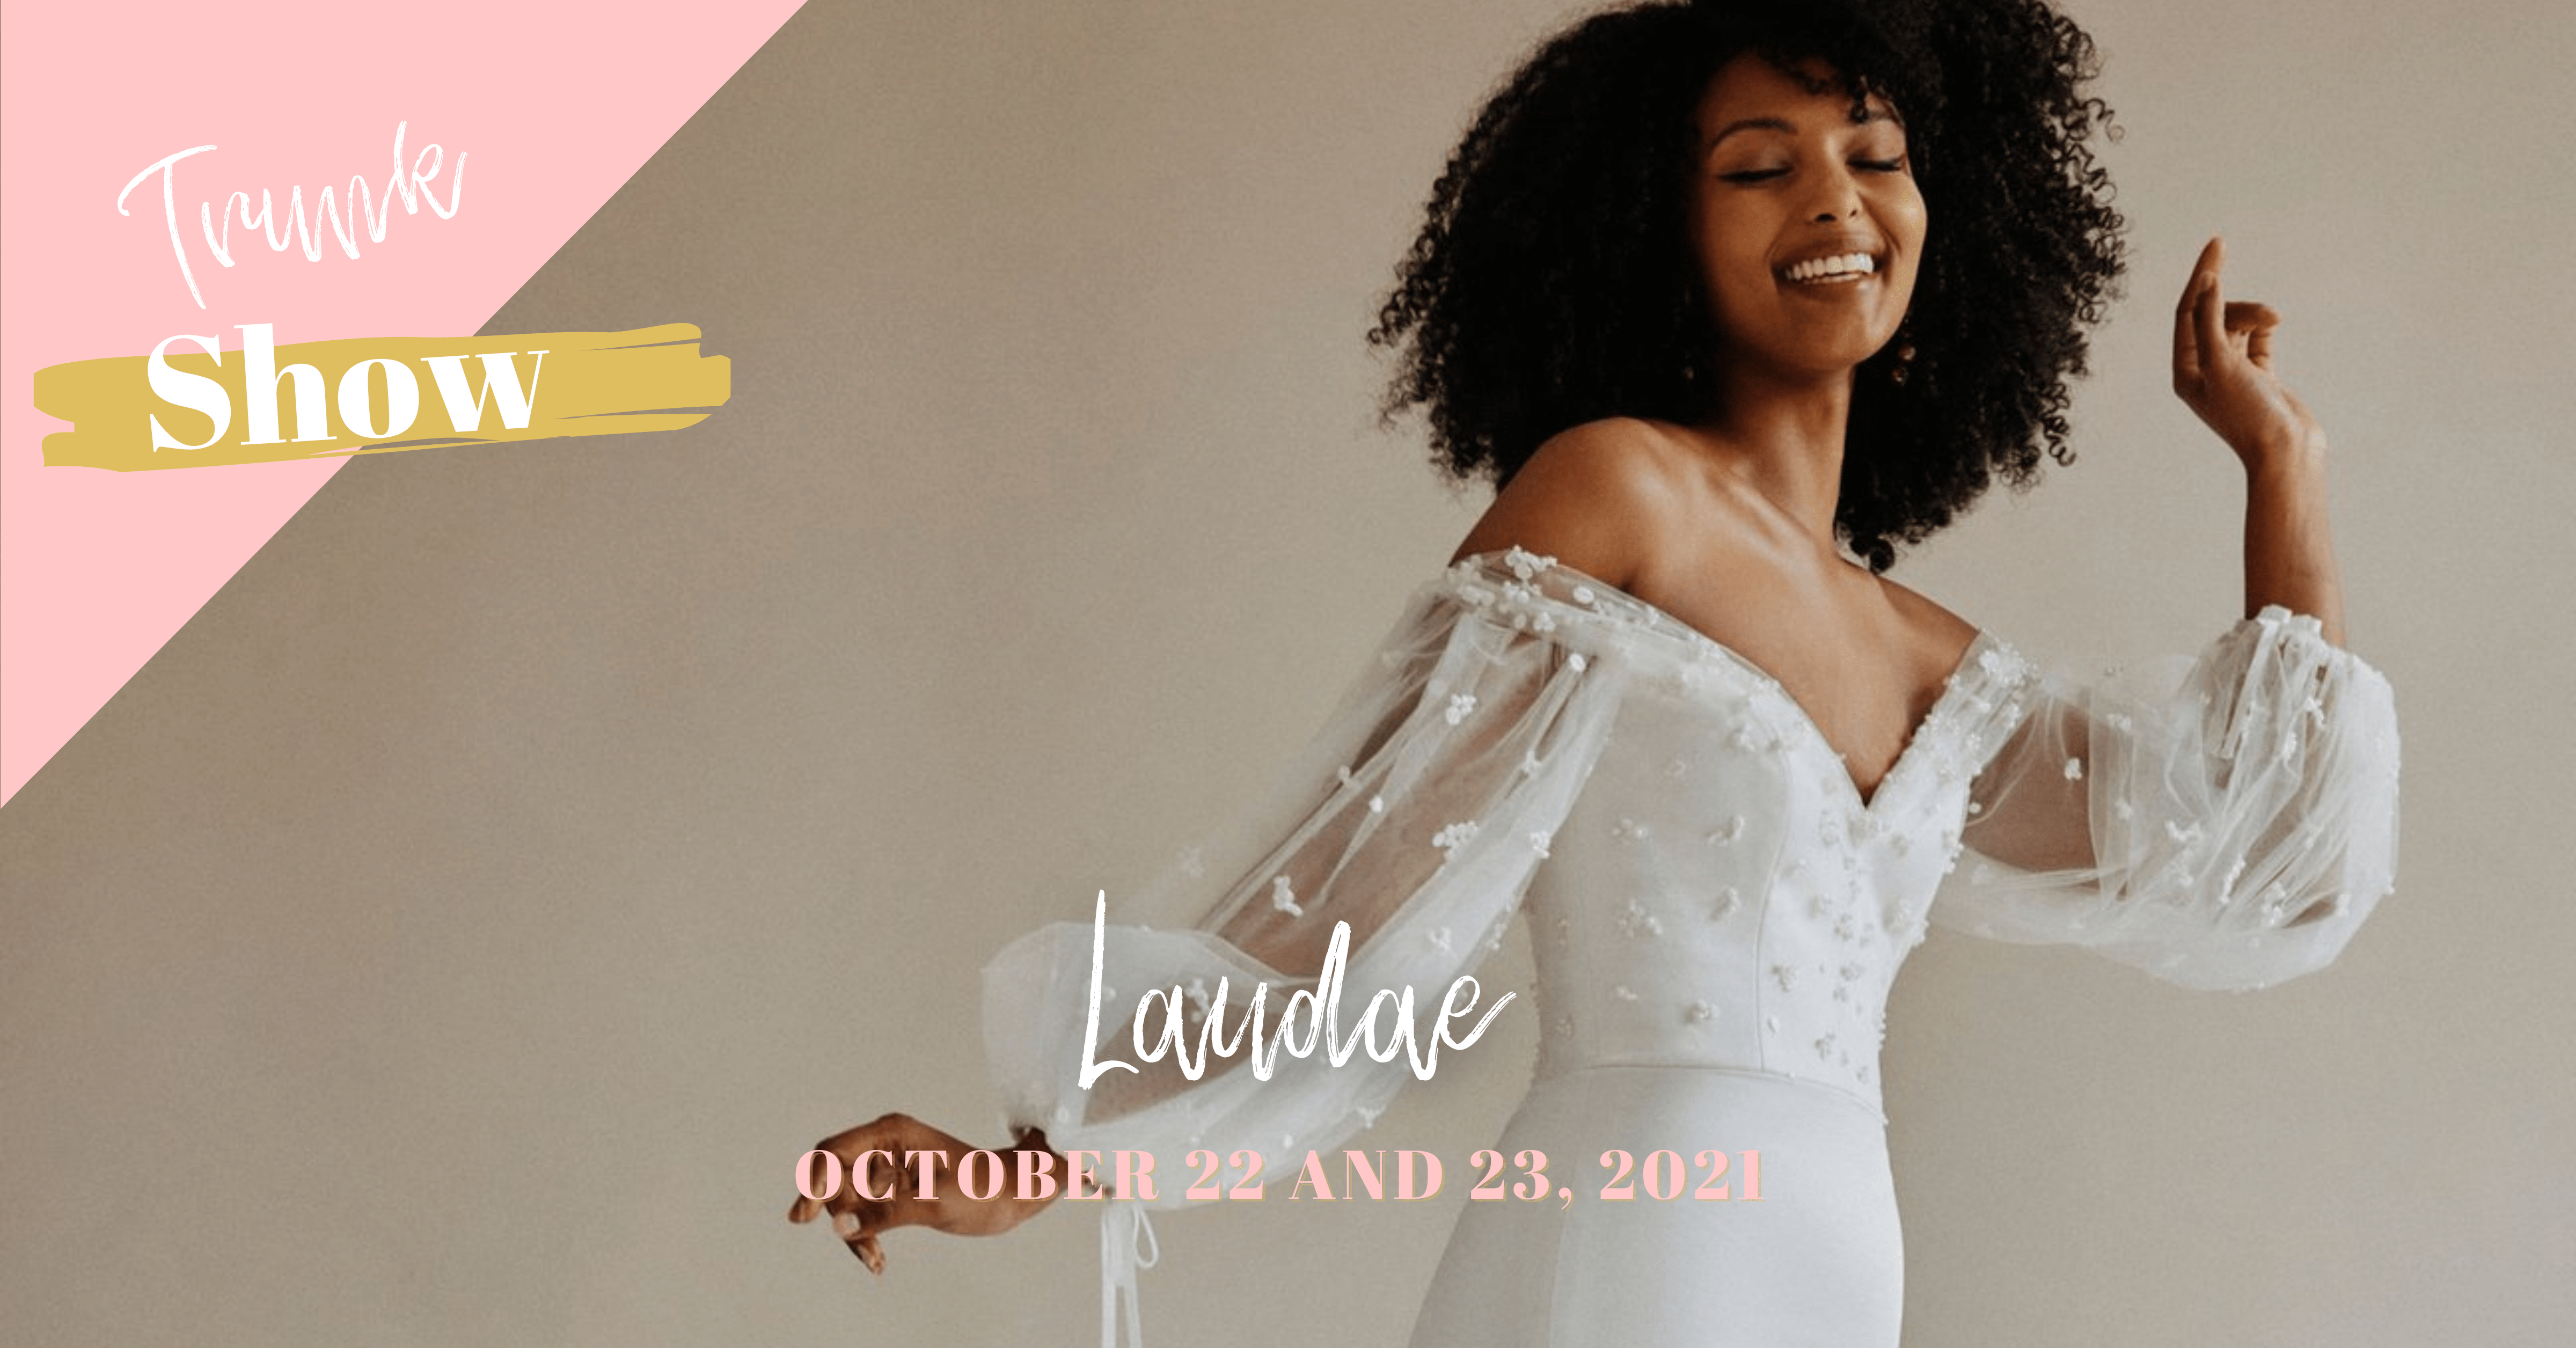 Laudae on October 22 and 23, 2021